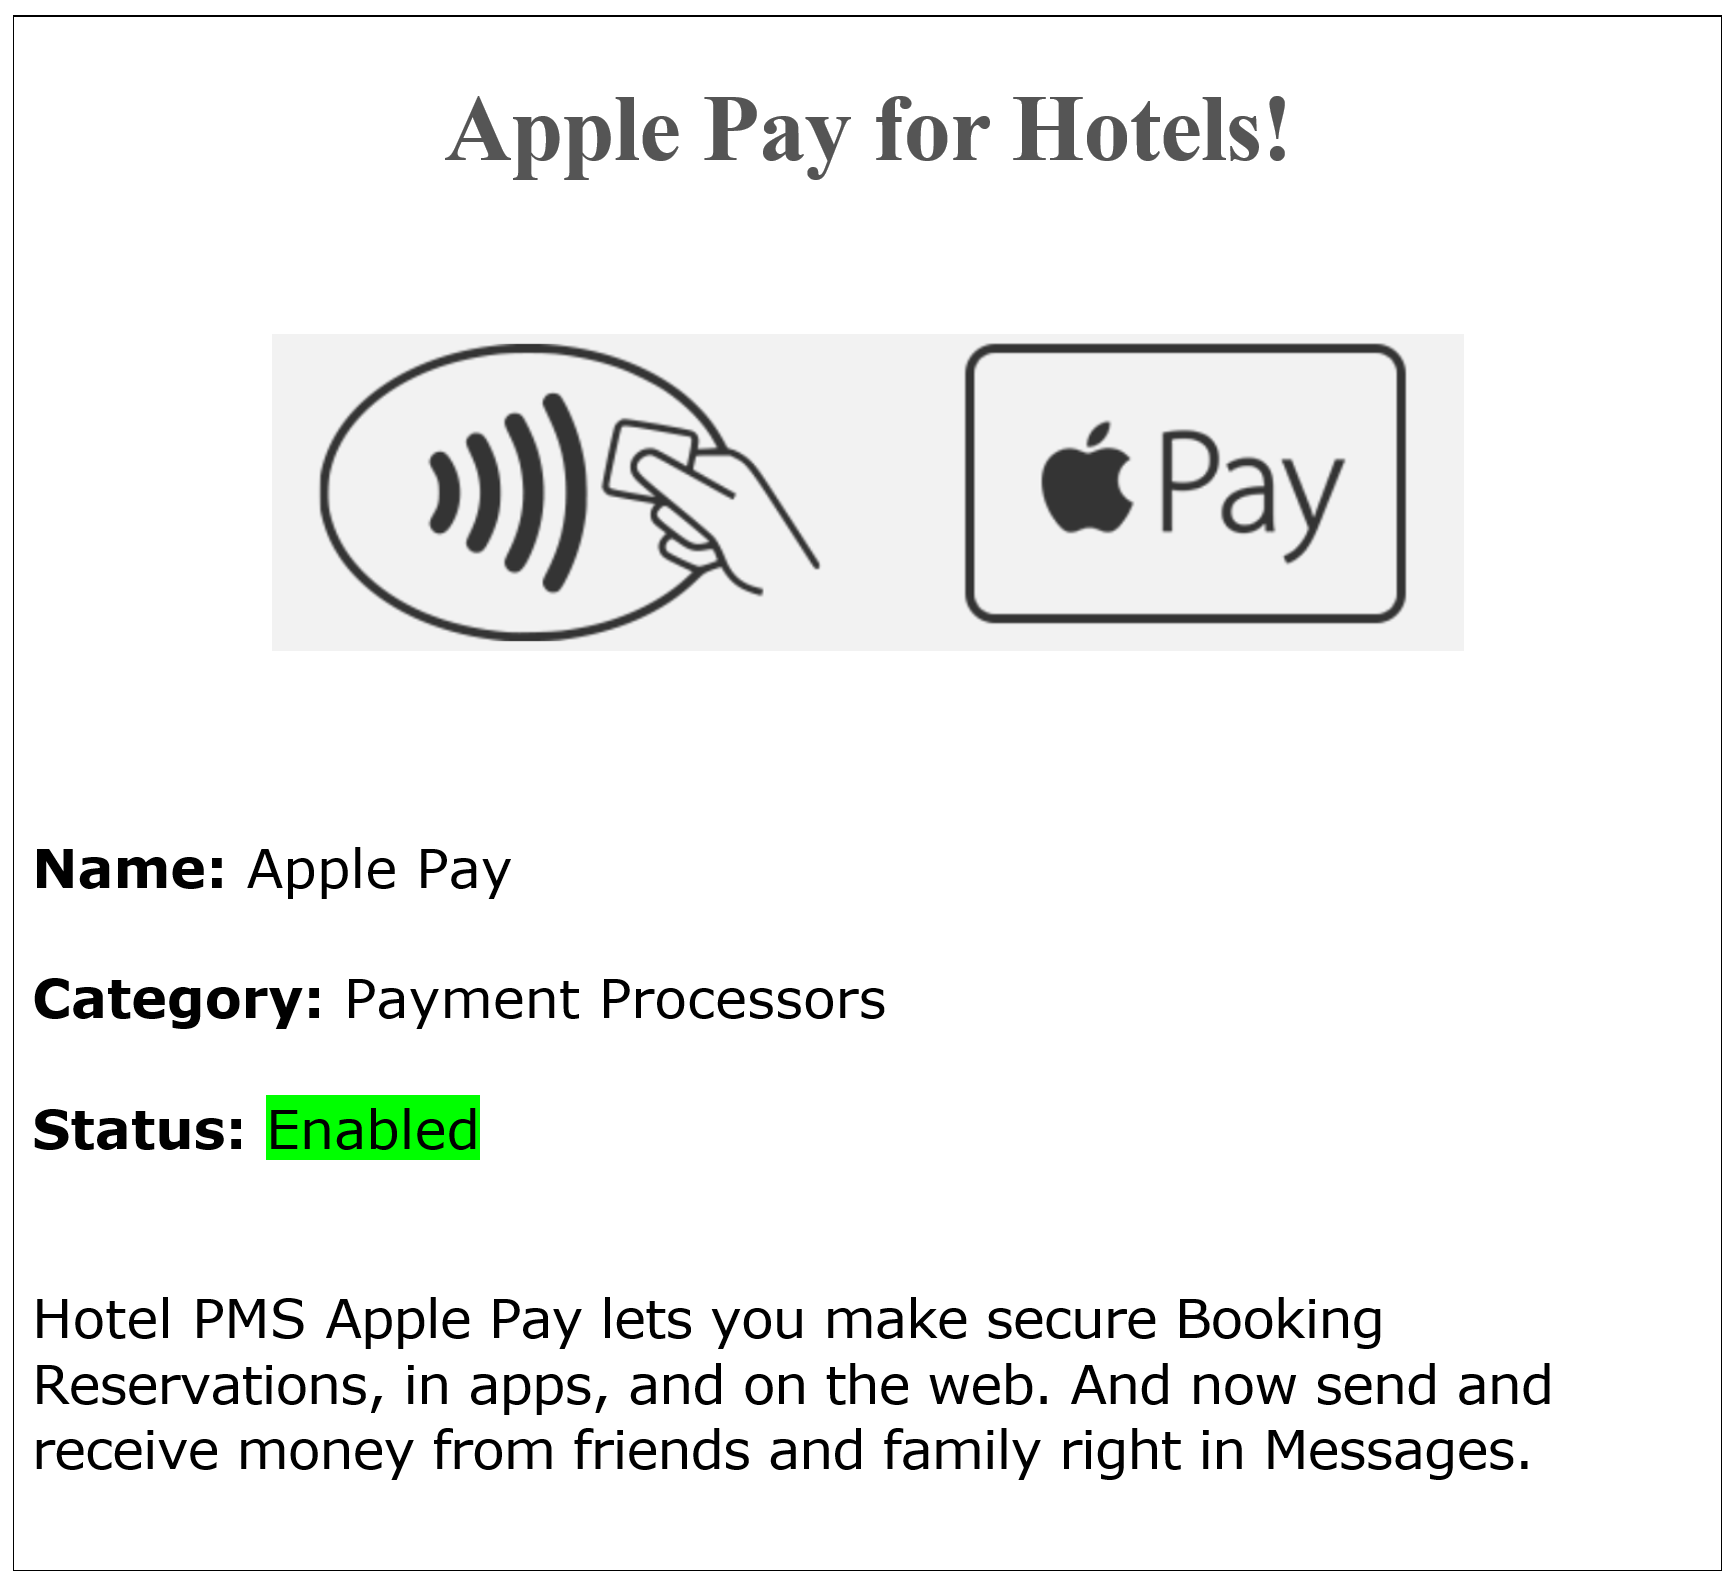 Apple Pay| Apple Watch | Apple Pay Hotel Credit Card Processing - Accept Hotel booking Reservations with Apple Pay, connect a Hotel With Apple Pay